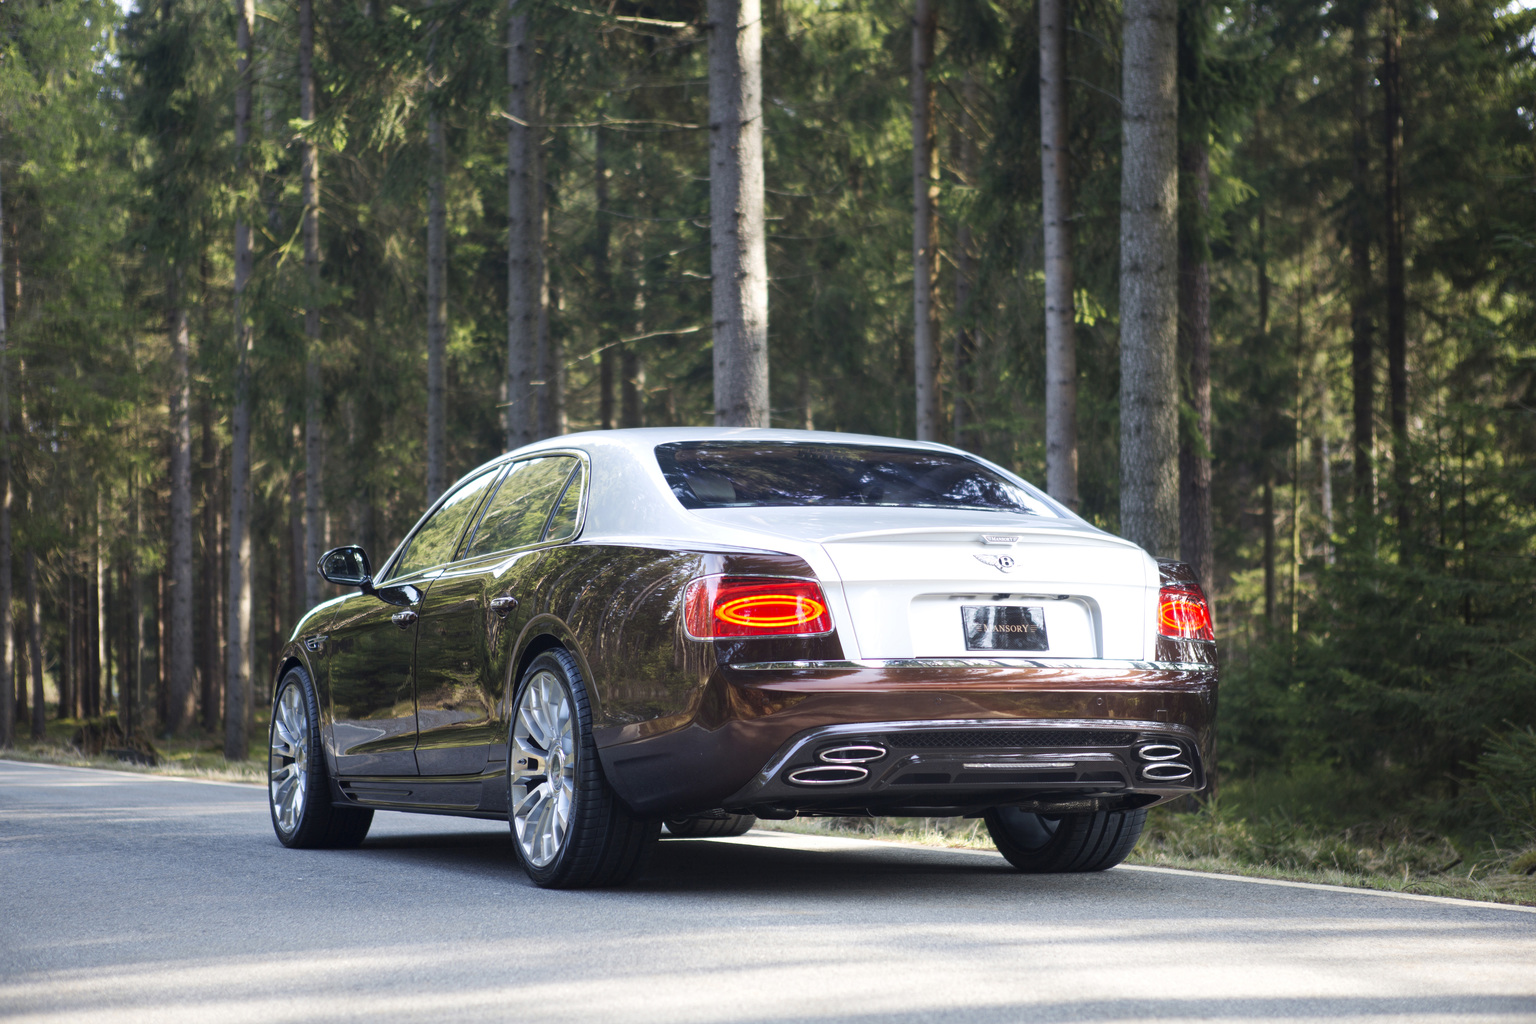 2014 Mansory Flying Spur